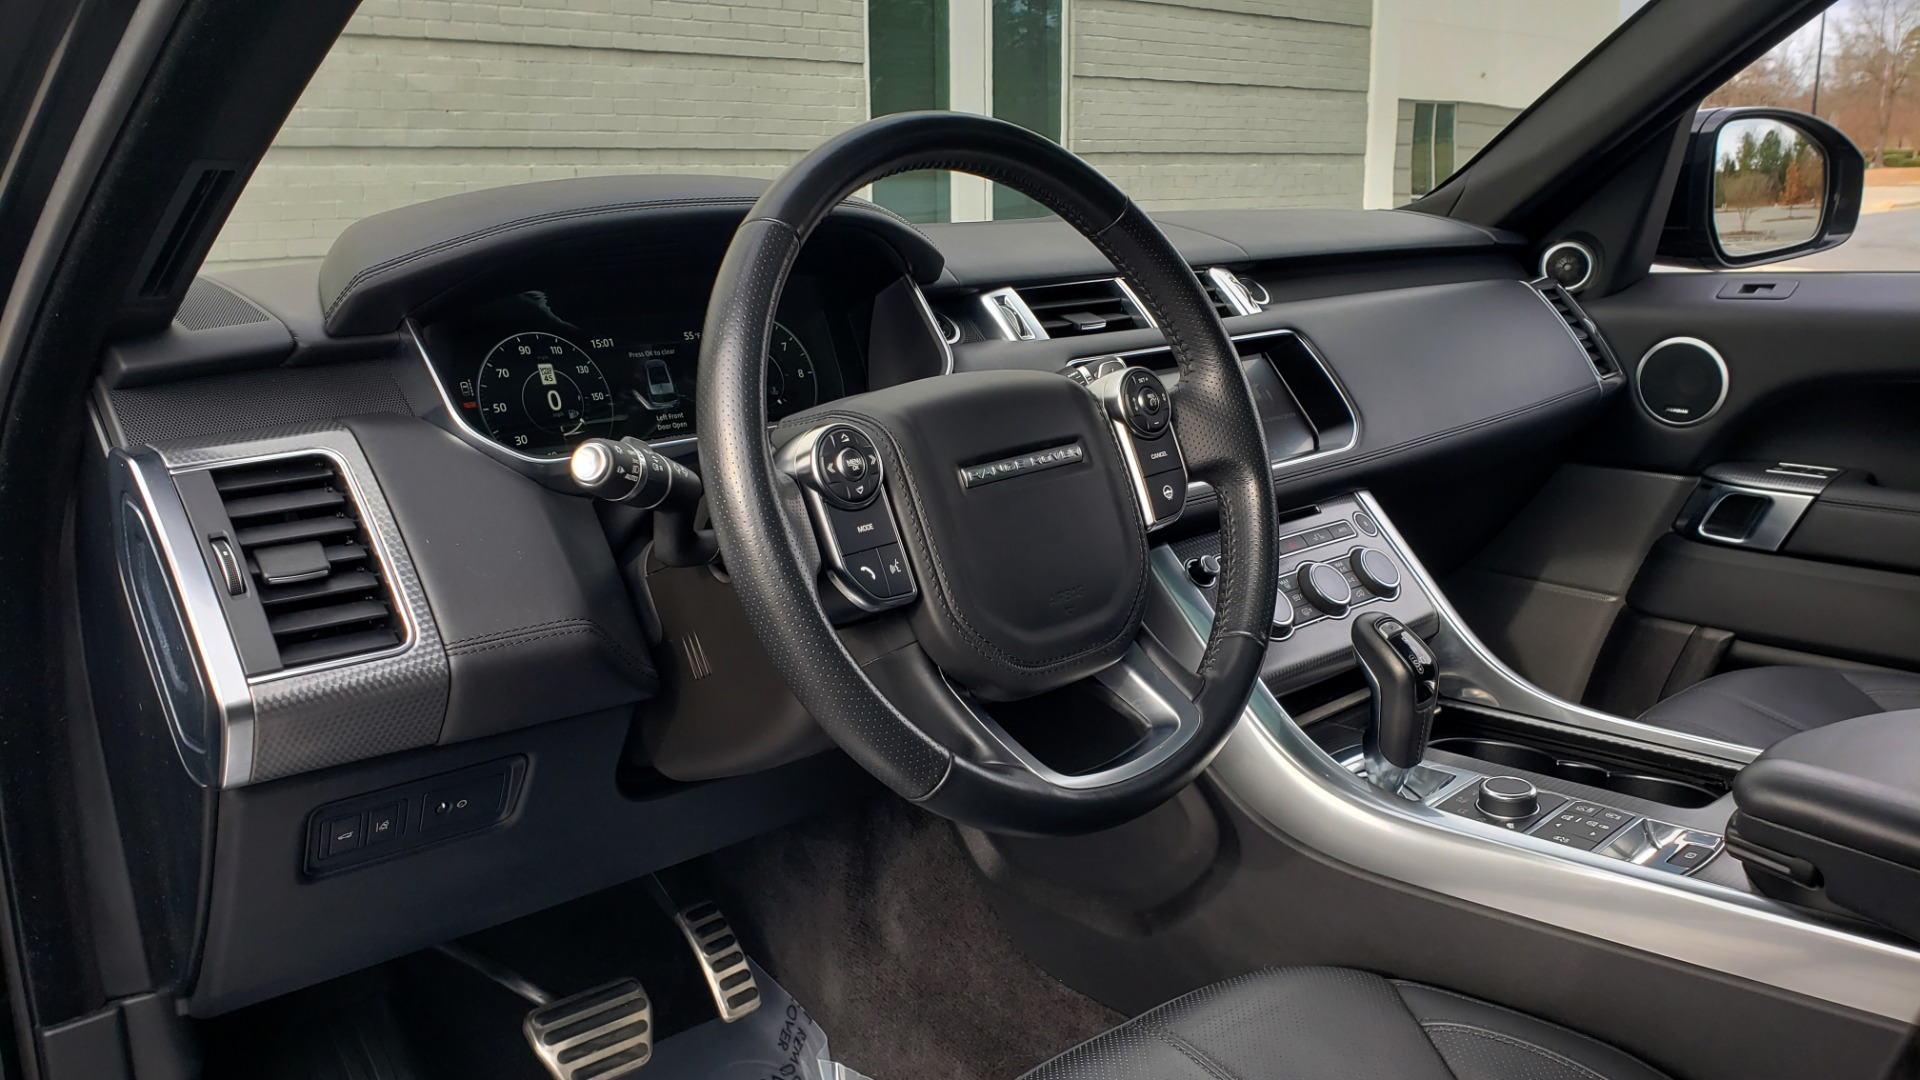 Used 2017 Land Rover RANGE ROVER SPORT HSE DYNAMIC / SC V6 / NAV / MERIDIAN / PANO-ROOF / REARVIEW for sale Sold at Formula Imports in Charlotte NC 28227 40